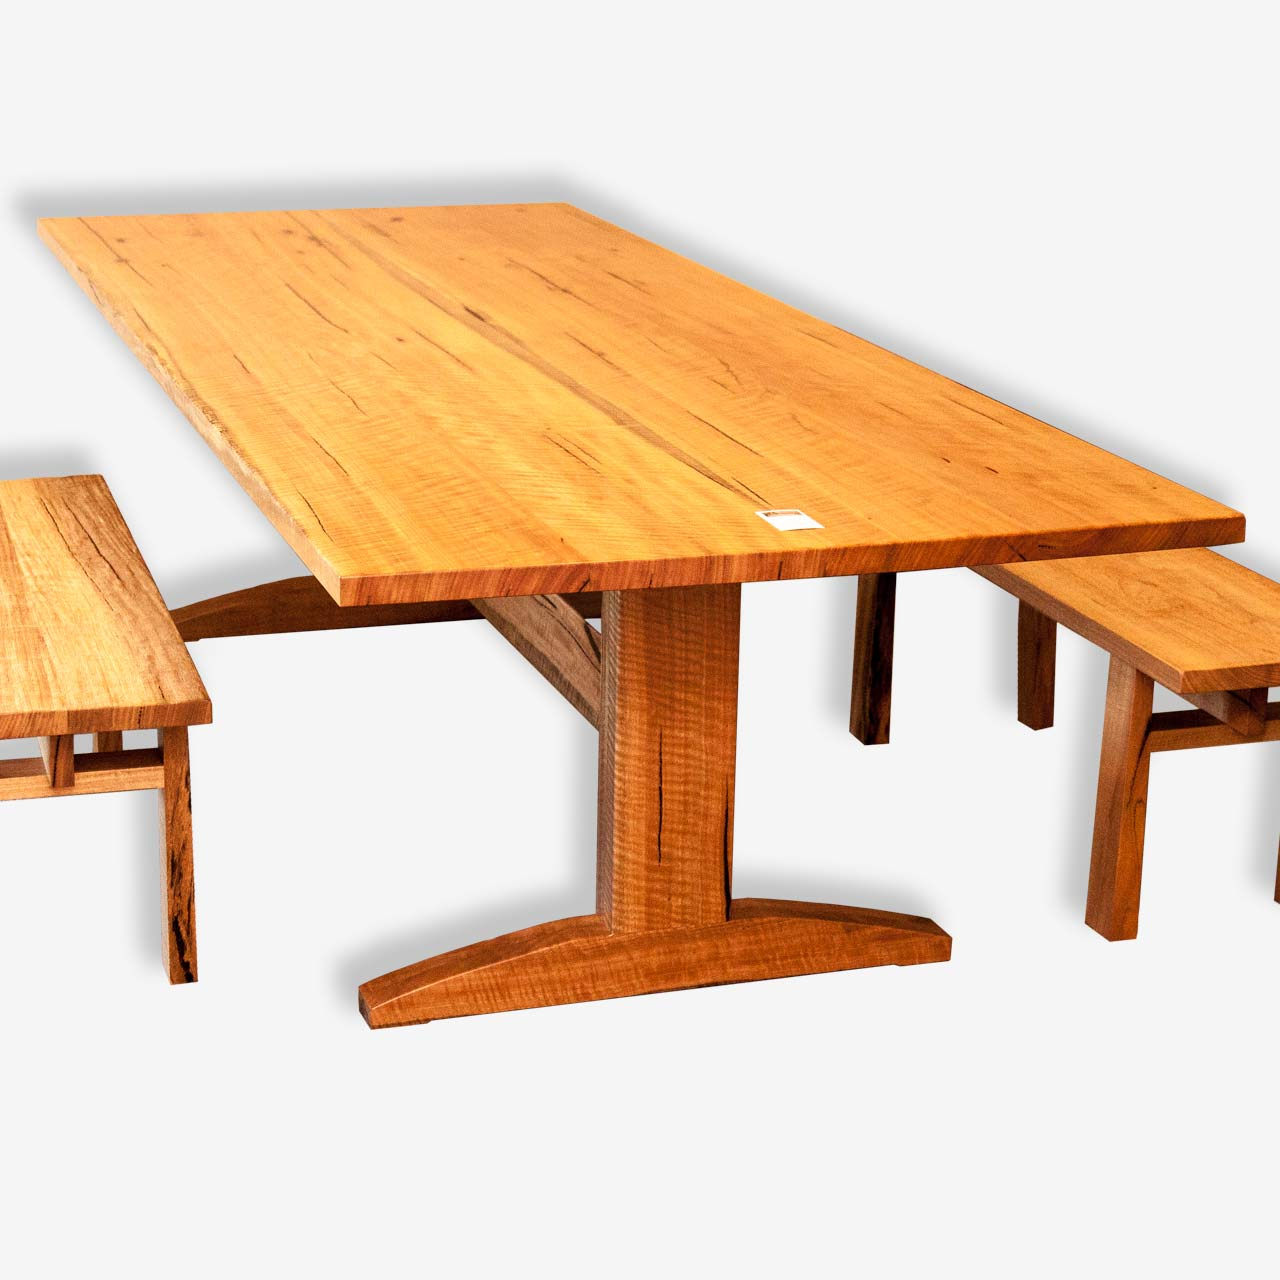 Dining Table Trestle Choice Image Dining Table Ideas : trestle marri dining table cowaramup busselton margaret river perth1 from sorahana.info size 1280 x 1280 jpeg 98kB